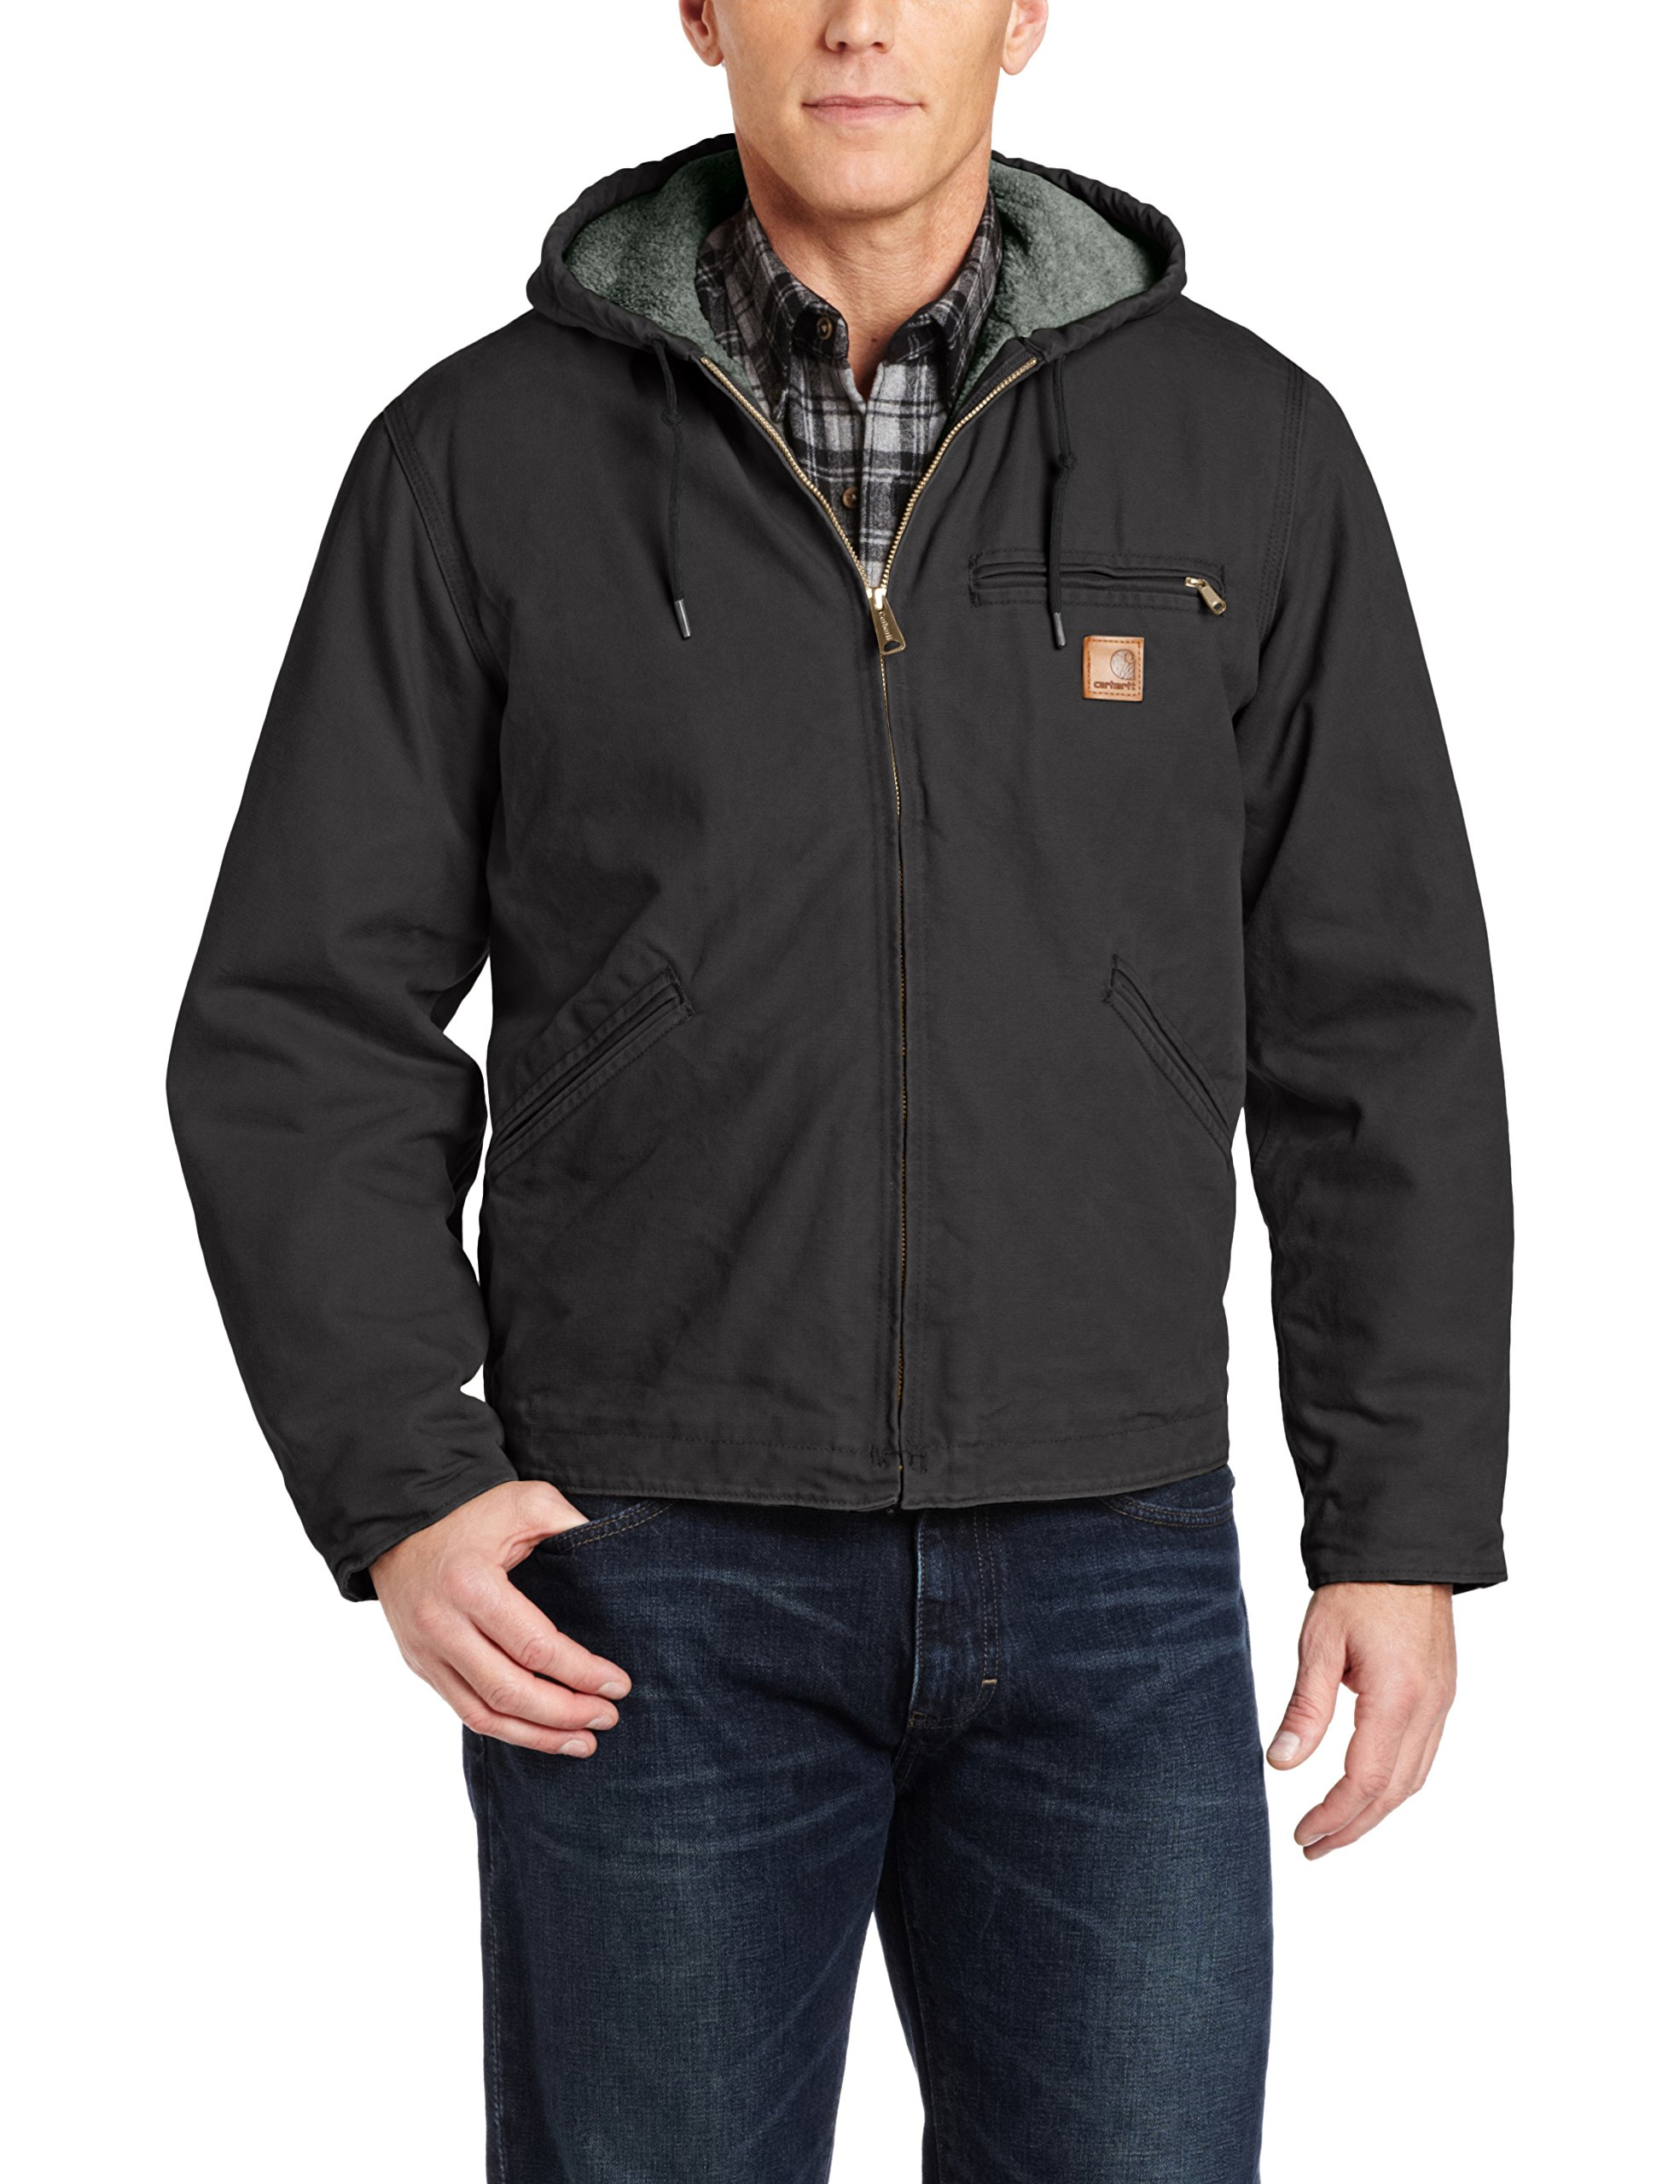 Carhartt Men's Sherpa Lined Sandstone Sierra Jacket J141,Black,XX-Large by Carhartt